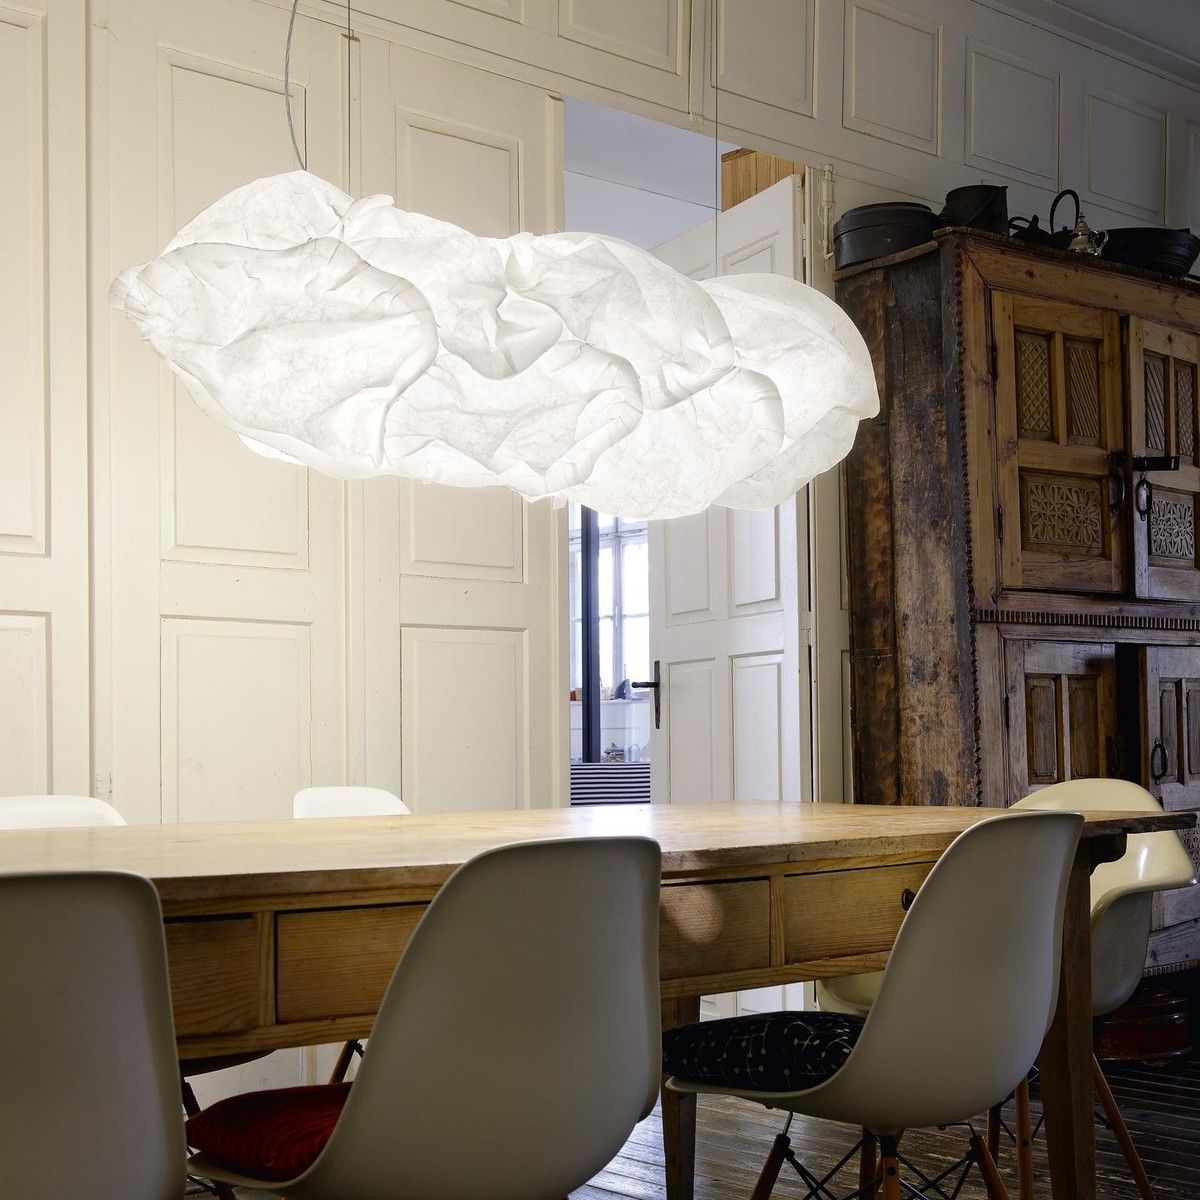 Cloud XL 60 Suspension Lamp Belux AmbienteDirectcom